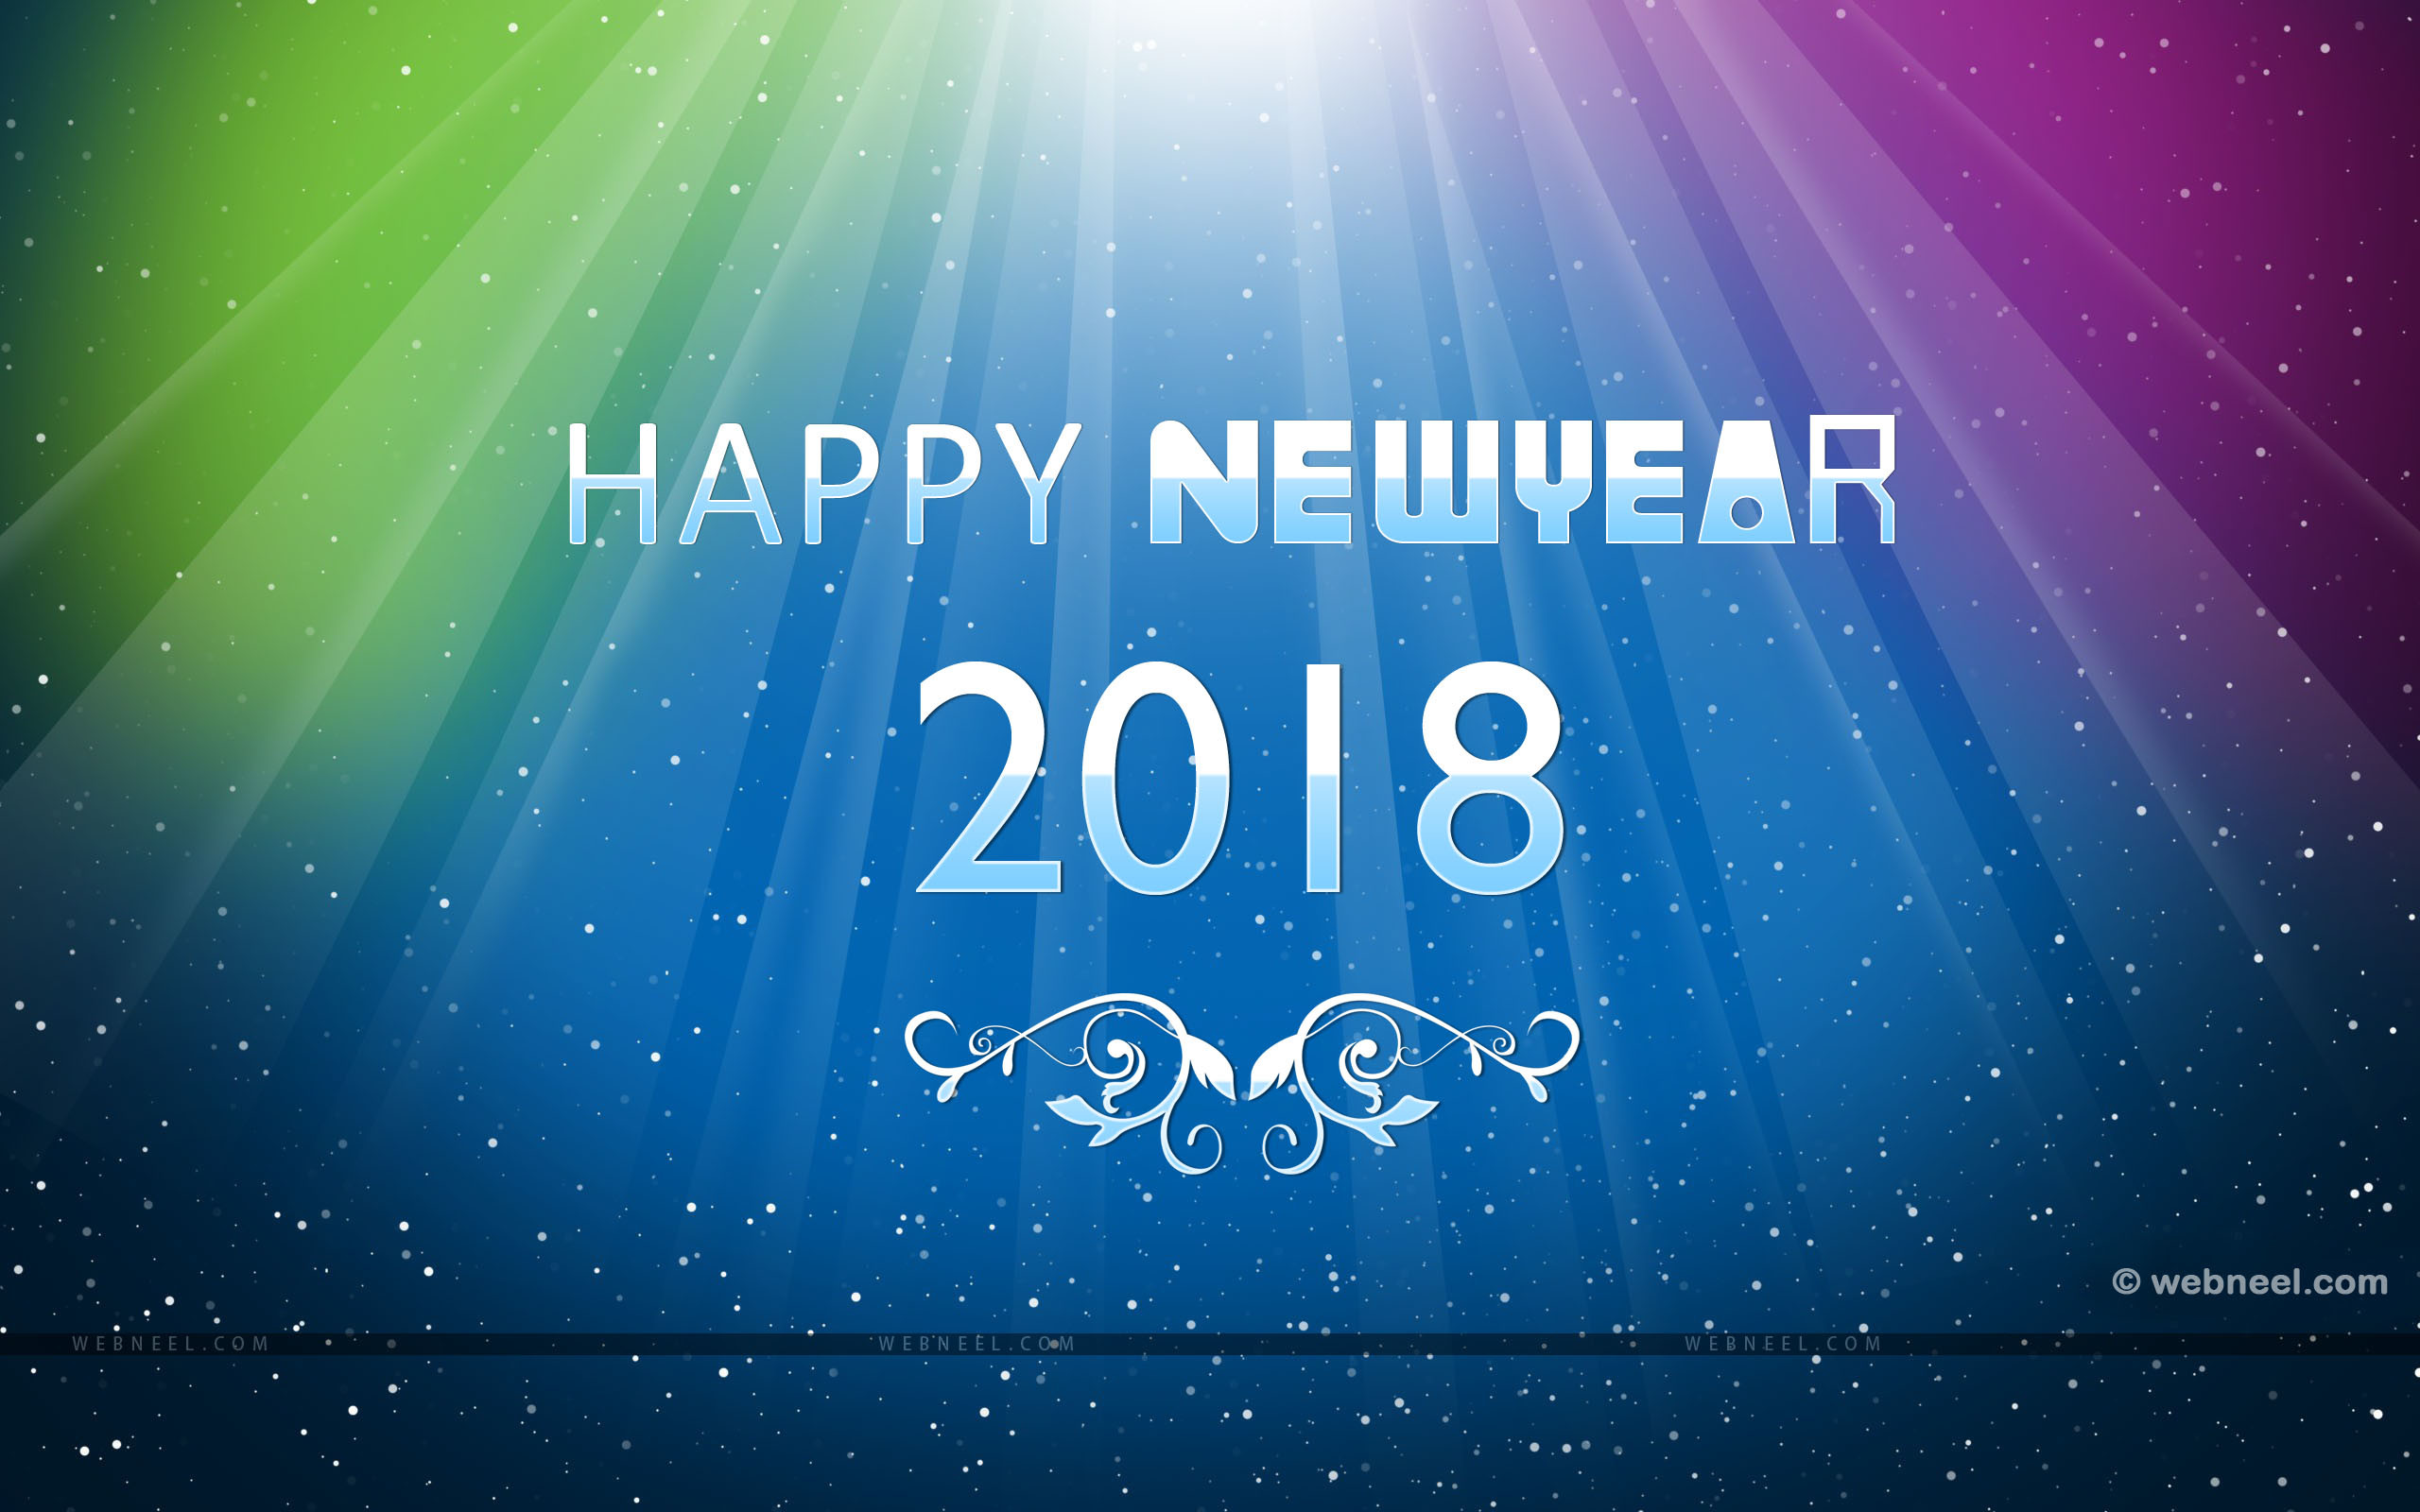 1920x1200 1920x1200 1920x1200 1920x1200 download 1920x1080 happy new year 2018 latest wallpapers